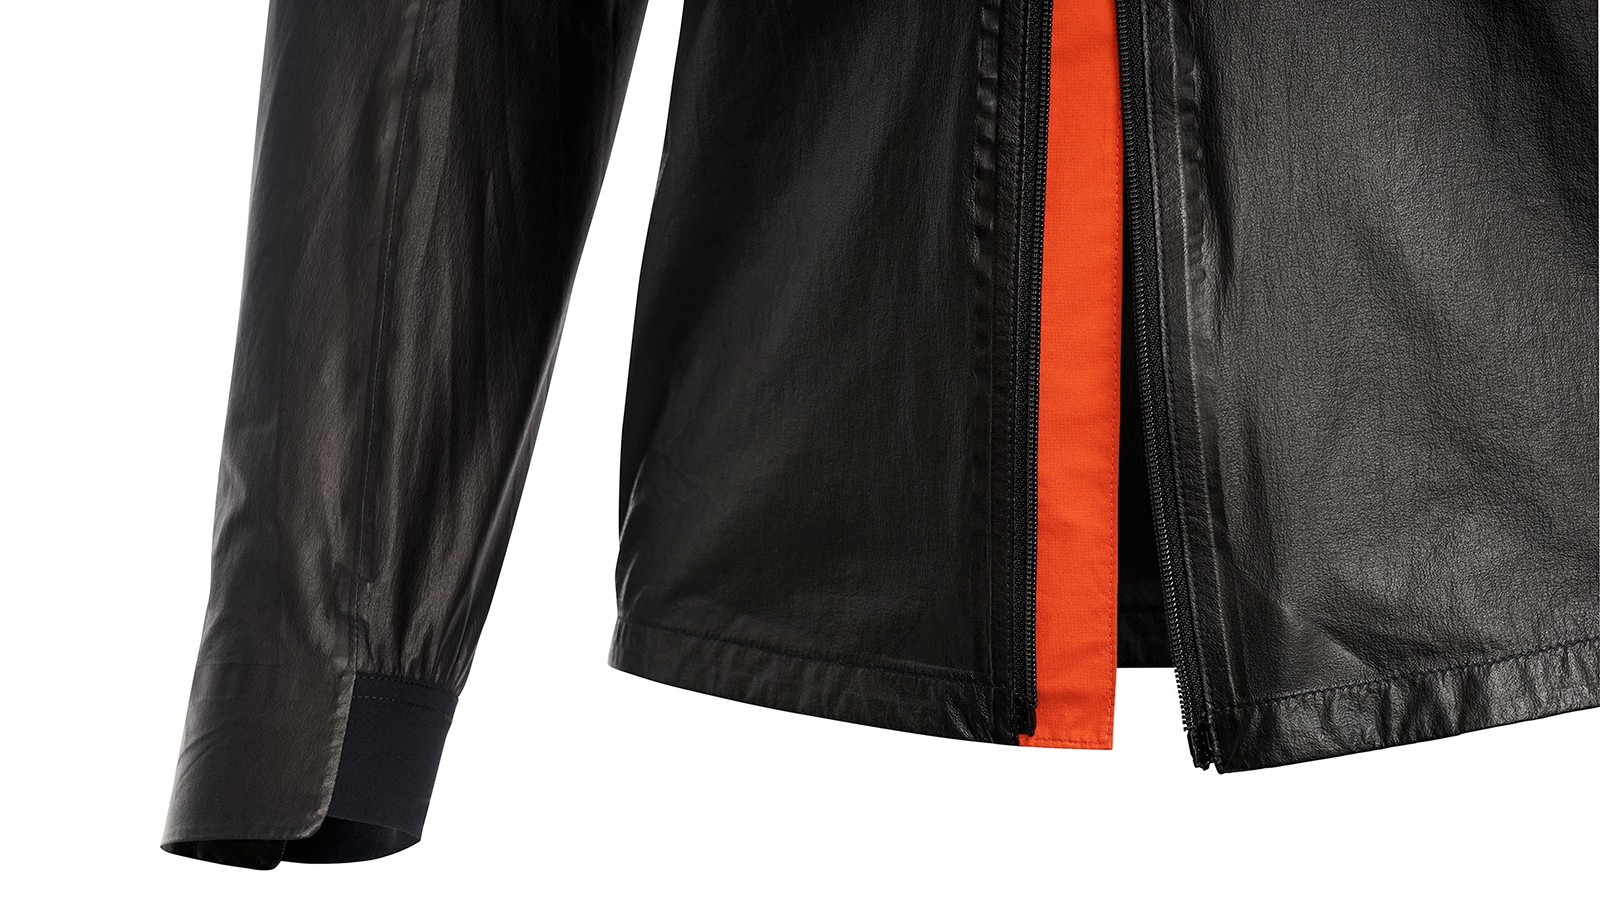 The One 1985 has a double zipper and a partially elasticated cuff